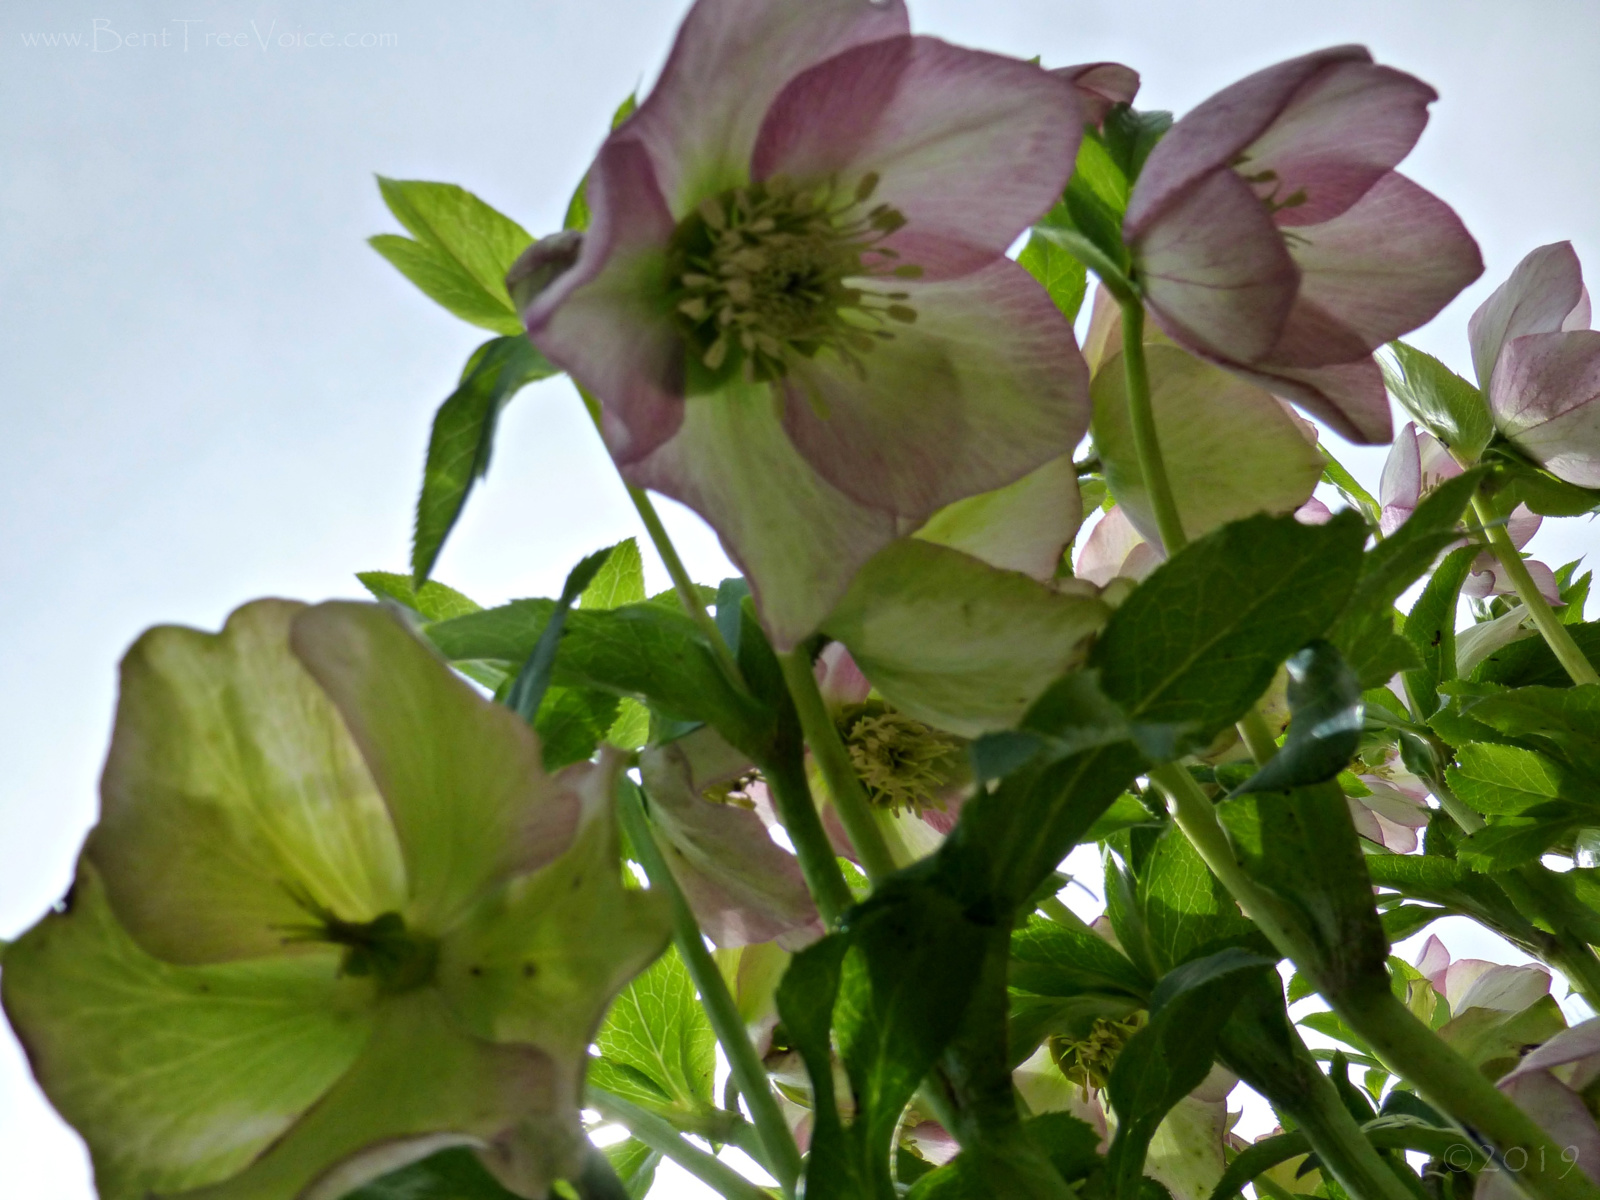 March 2, 2019 - Lenten Rose on Hole 7